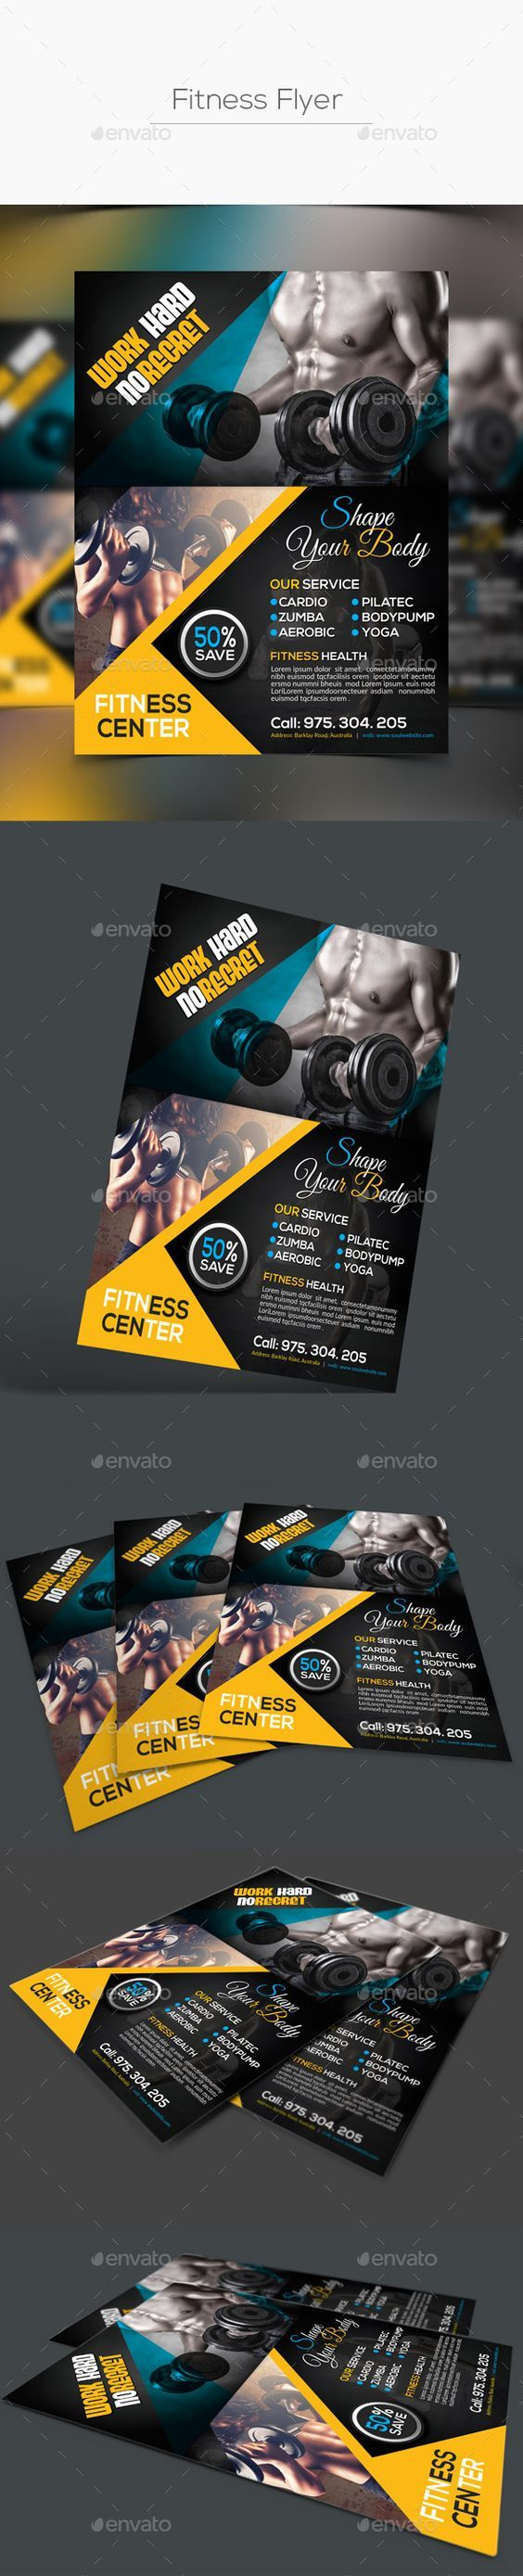 Fitness Flyer Template  Flyer Template Flyers And Templates